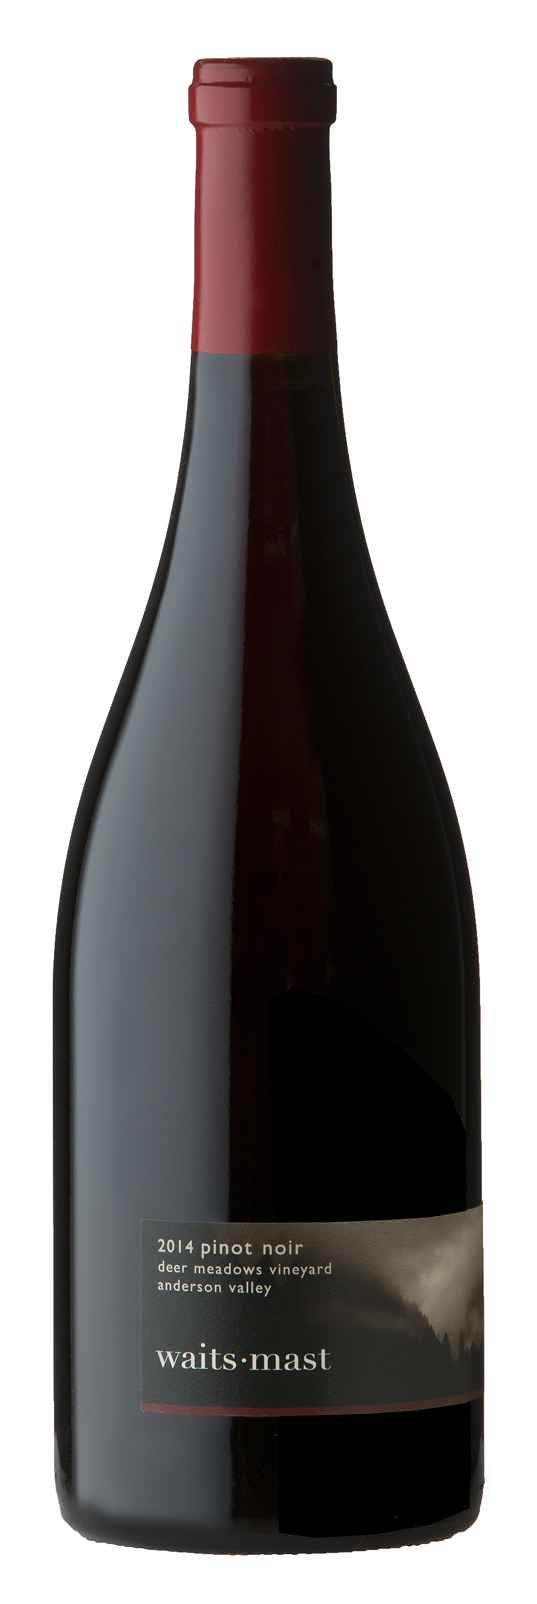 2014 Waits-Mast Pinot Noir, Deer Meadows Vineyard, Anderson Valley_MAIN